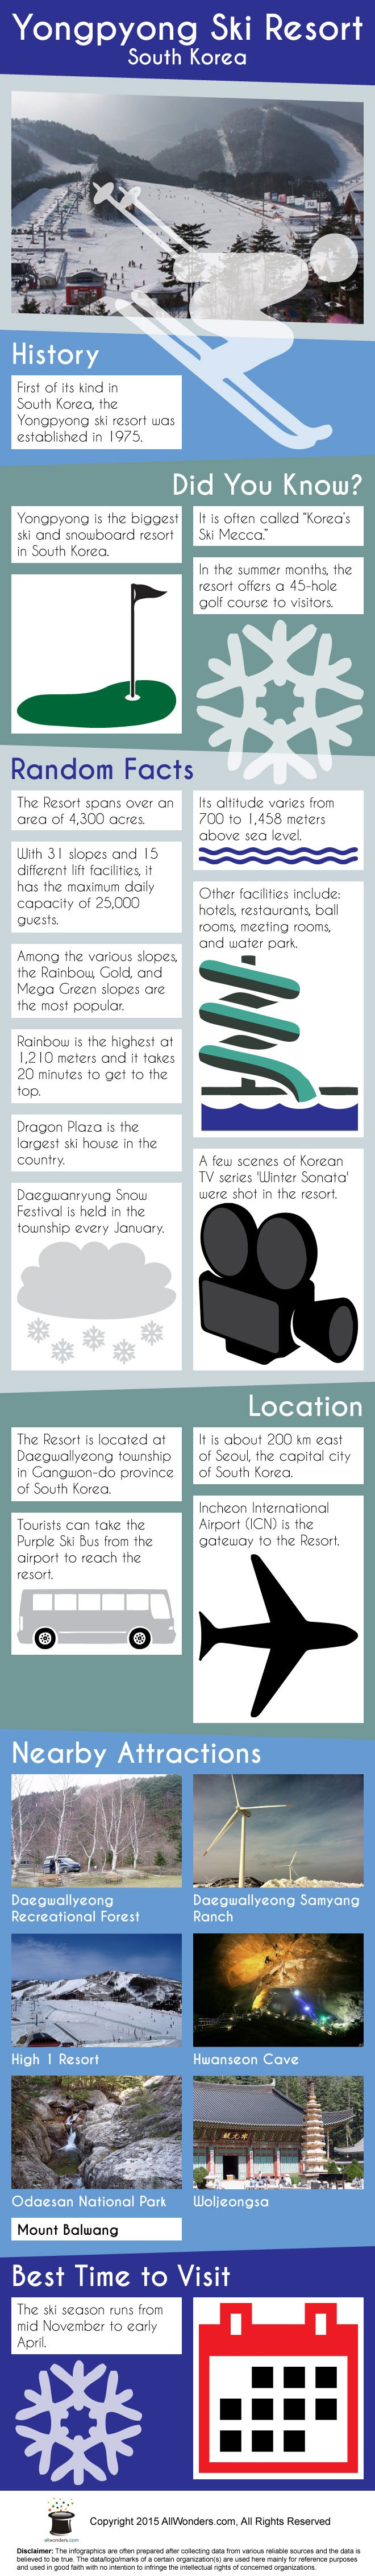 Yongpyong Ski Resort Infographic